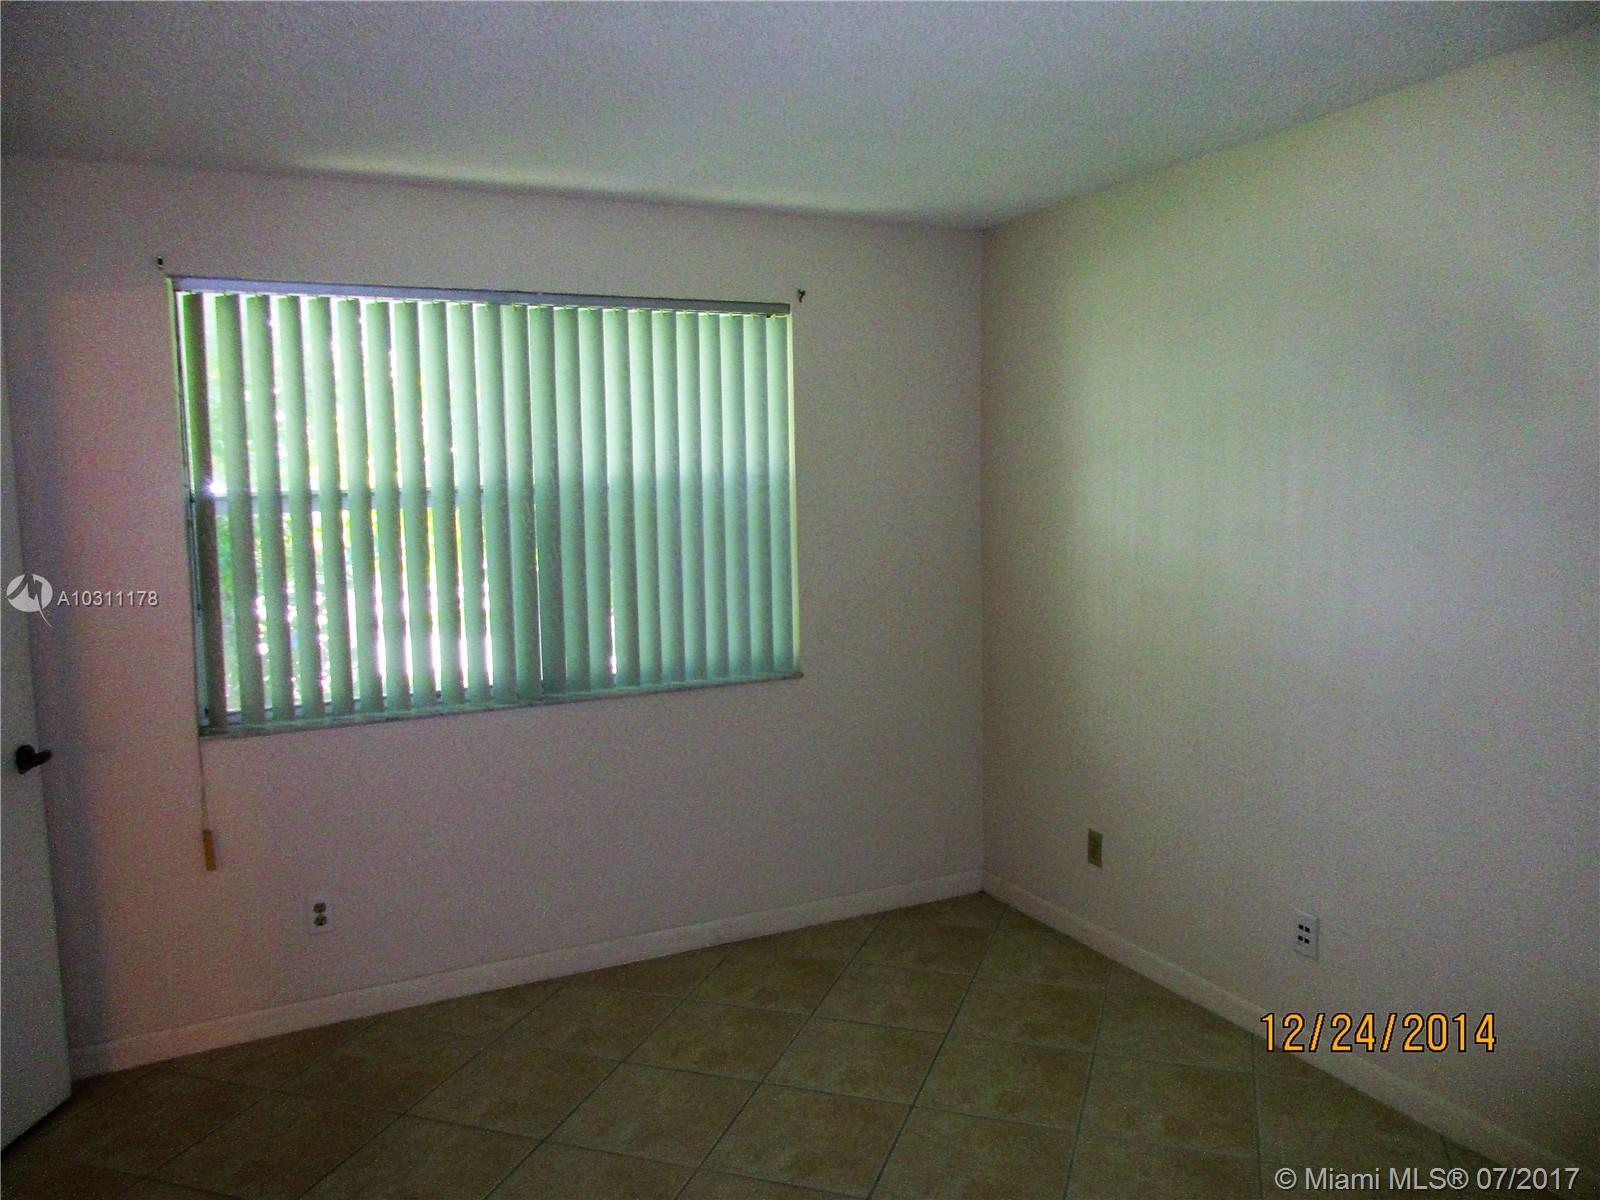 10305 NW 8th St # 206, Pembroke Pines, FL 33026